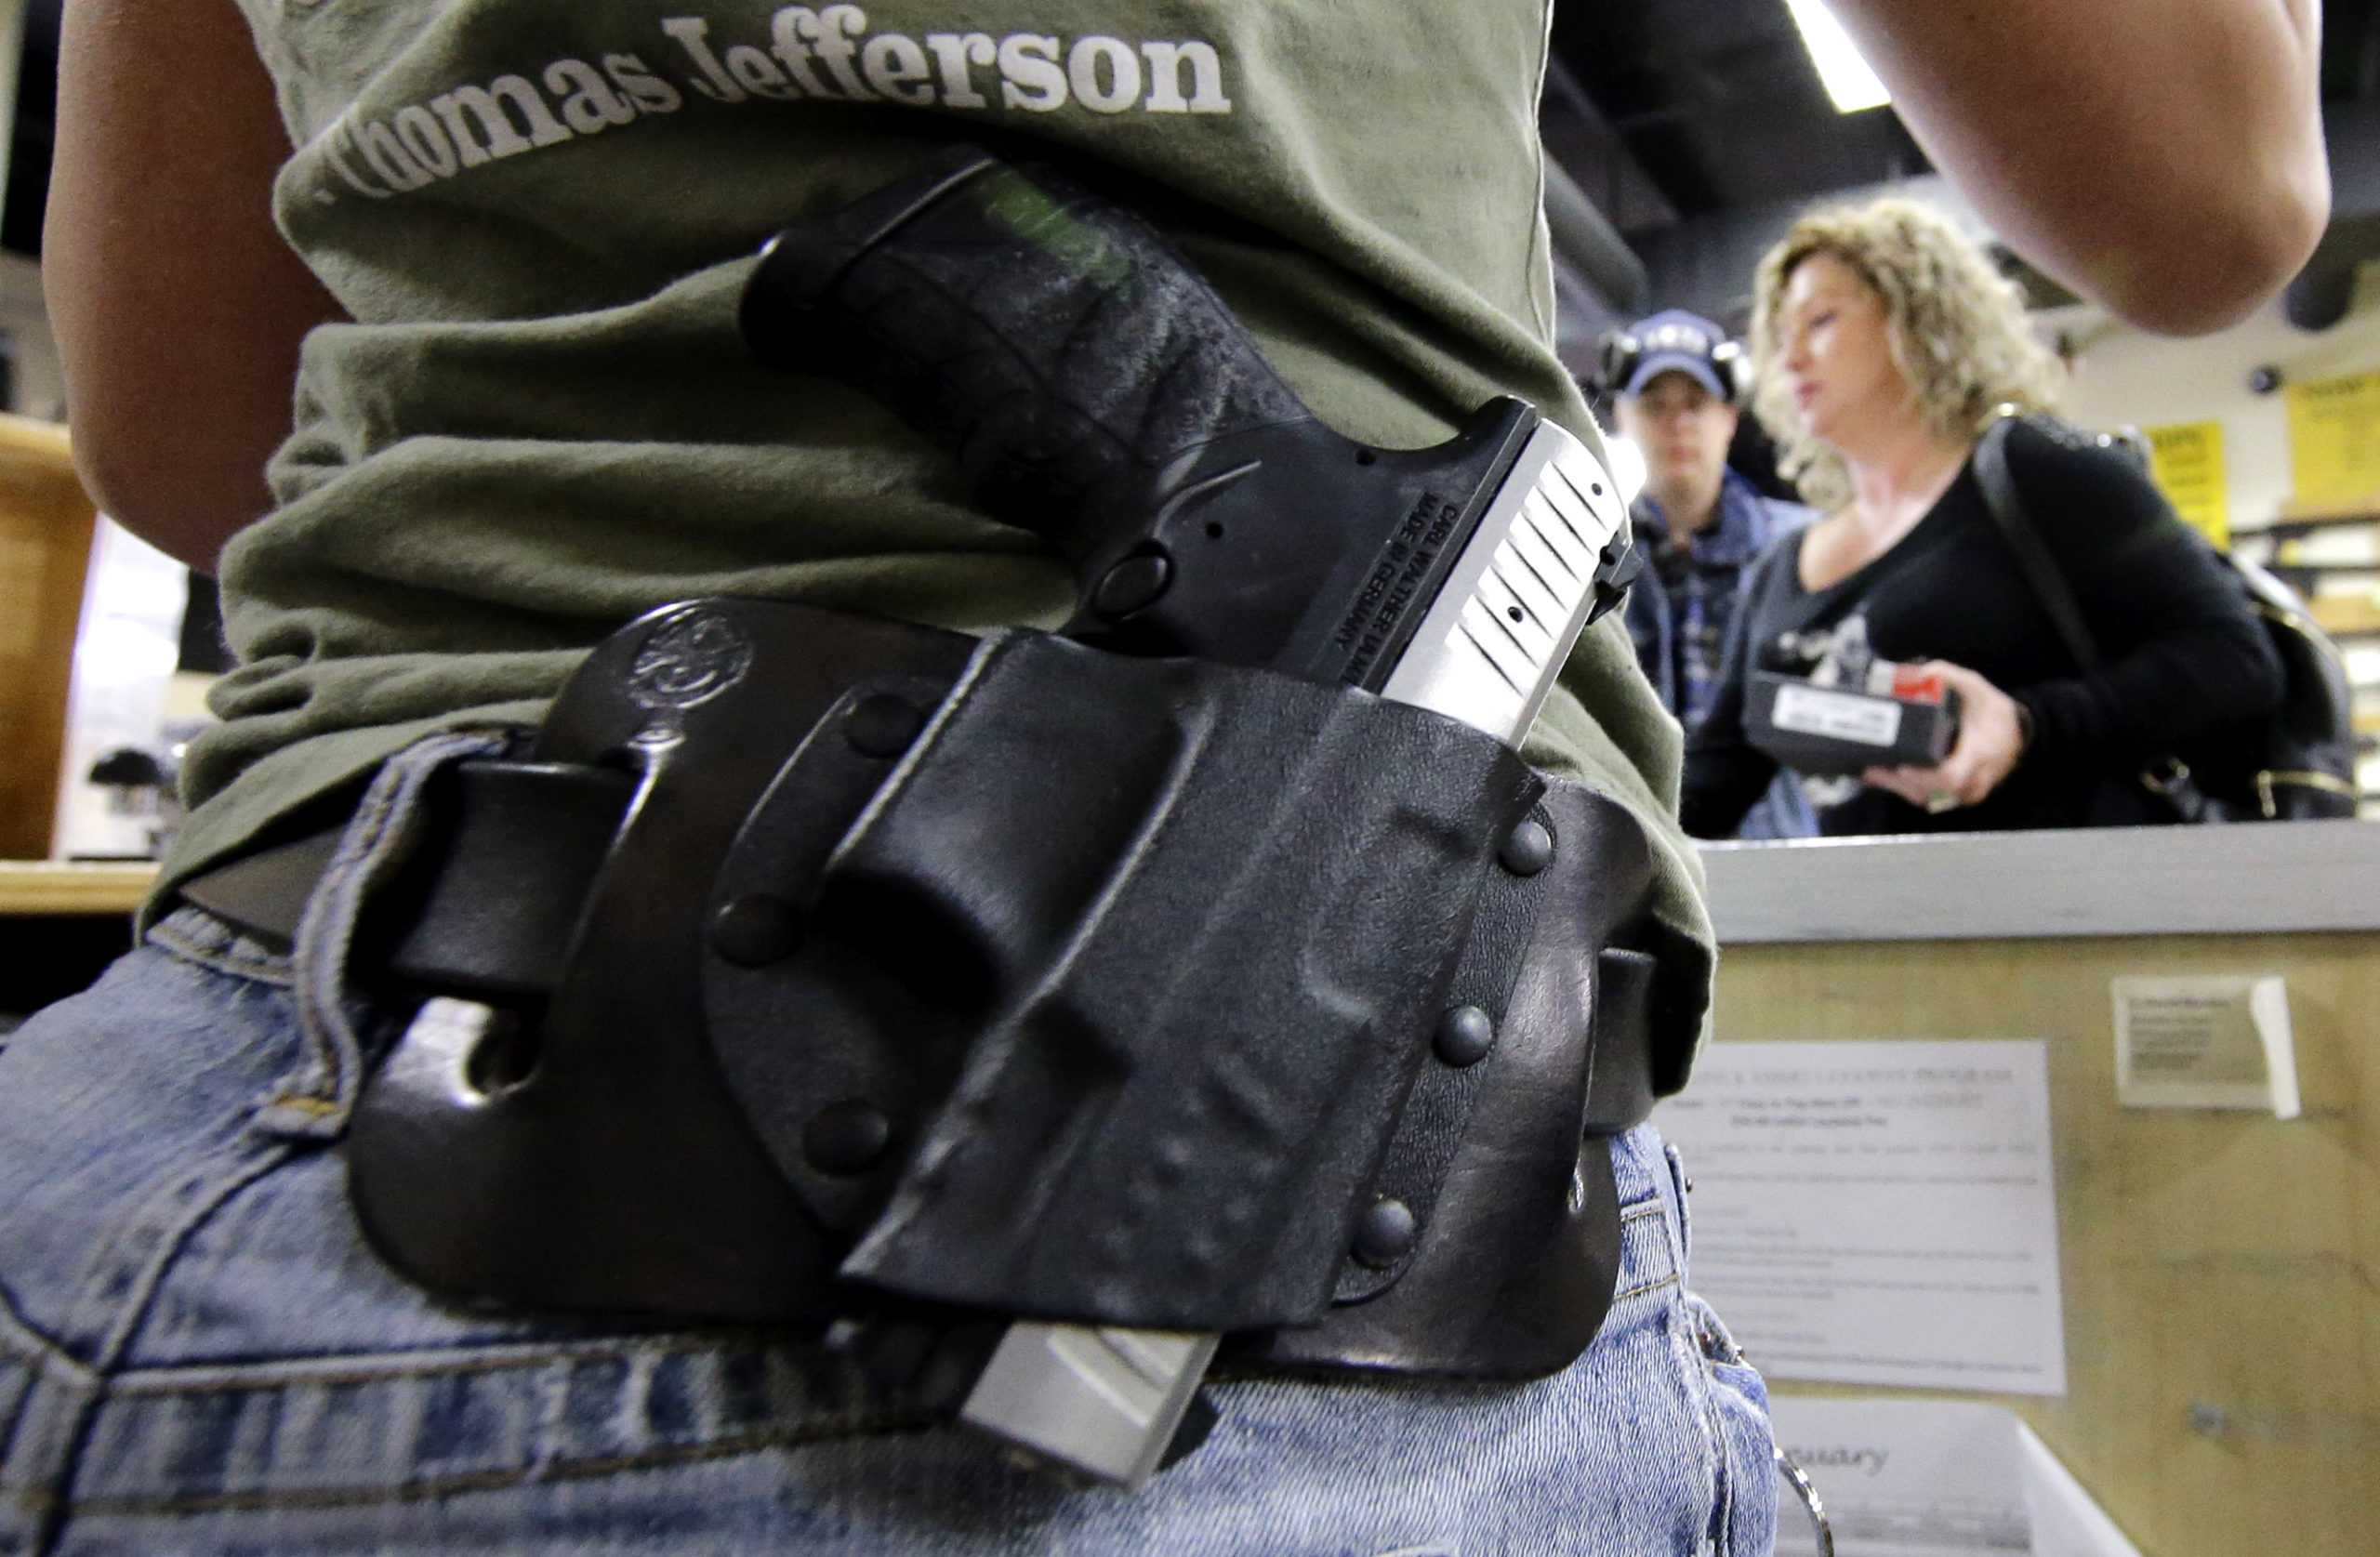 Kayla Brown, left, wears her gun on her hip while working at the Spring Guns and Ammo store Monday, Jan. 4, 2016, in Spring, Texas. (AP Photo/David J. Phillip)